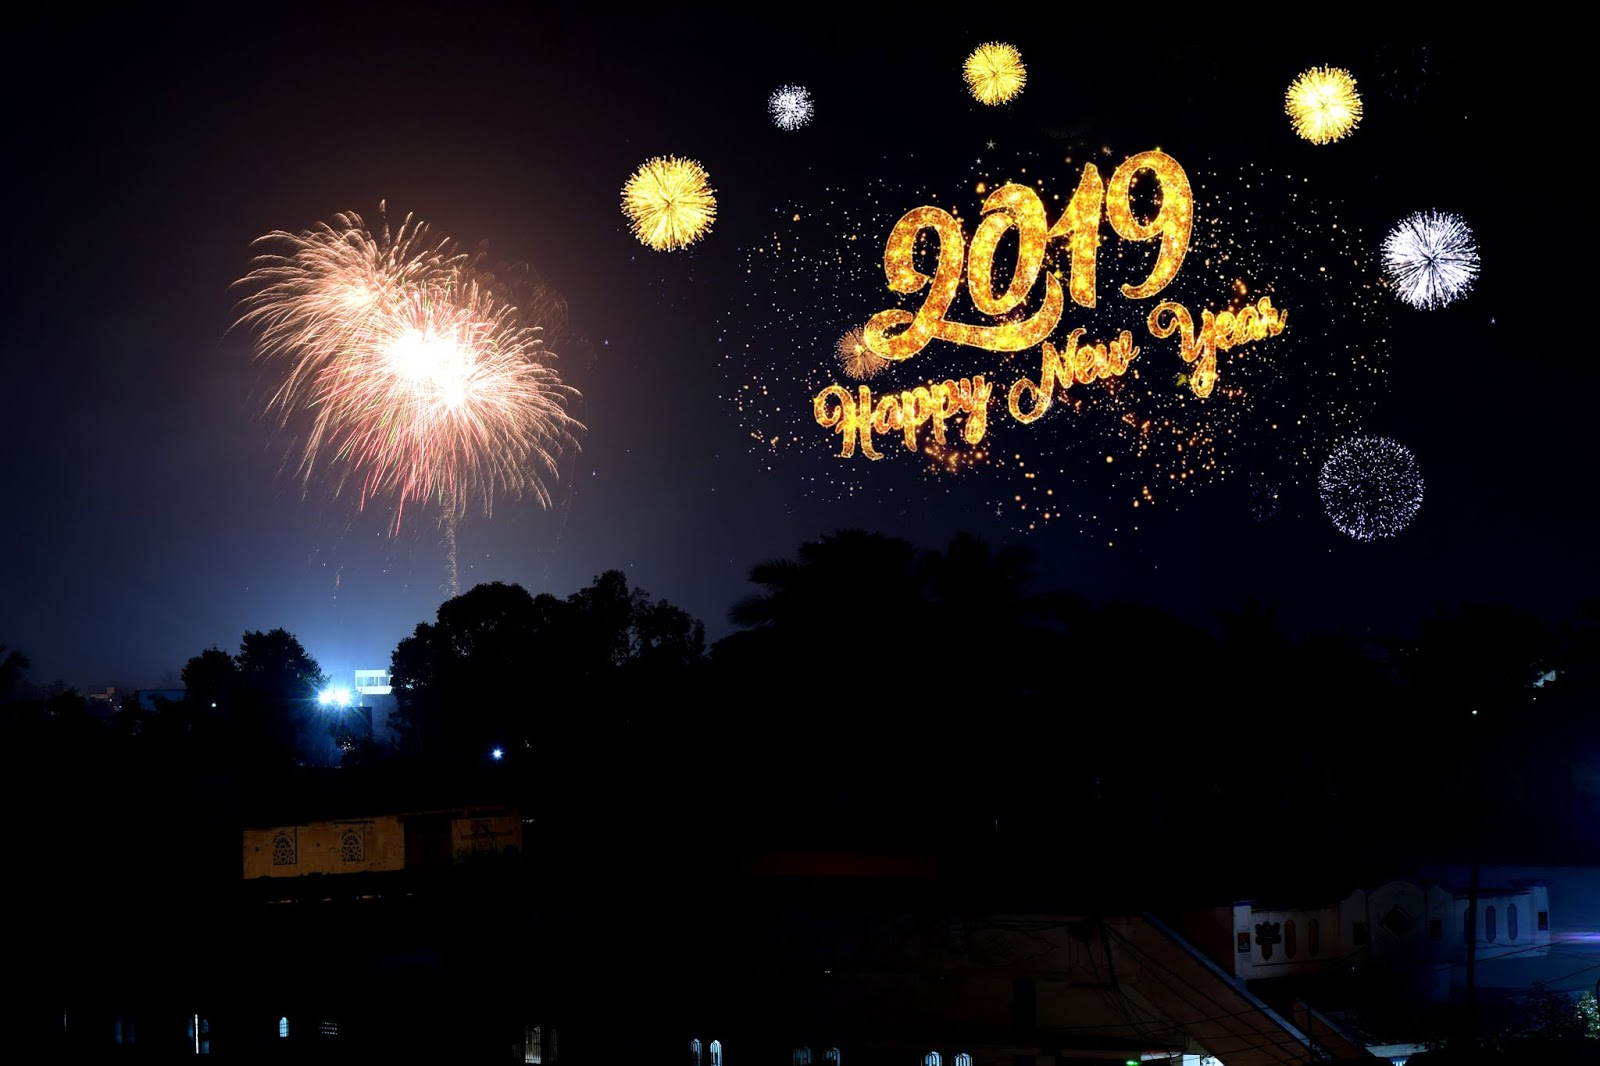 happy new year 2020 4k image, wishes, greeting